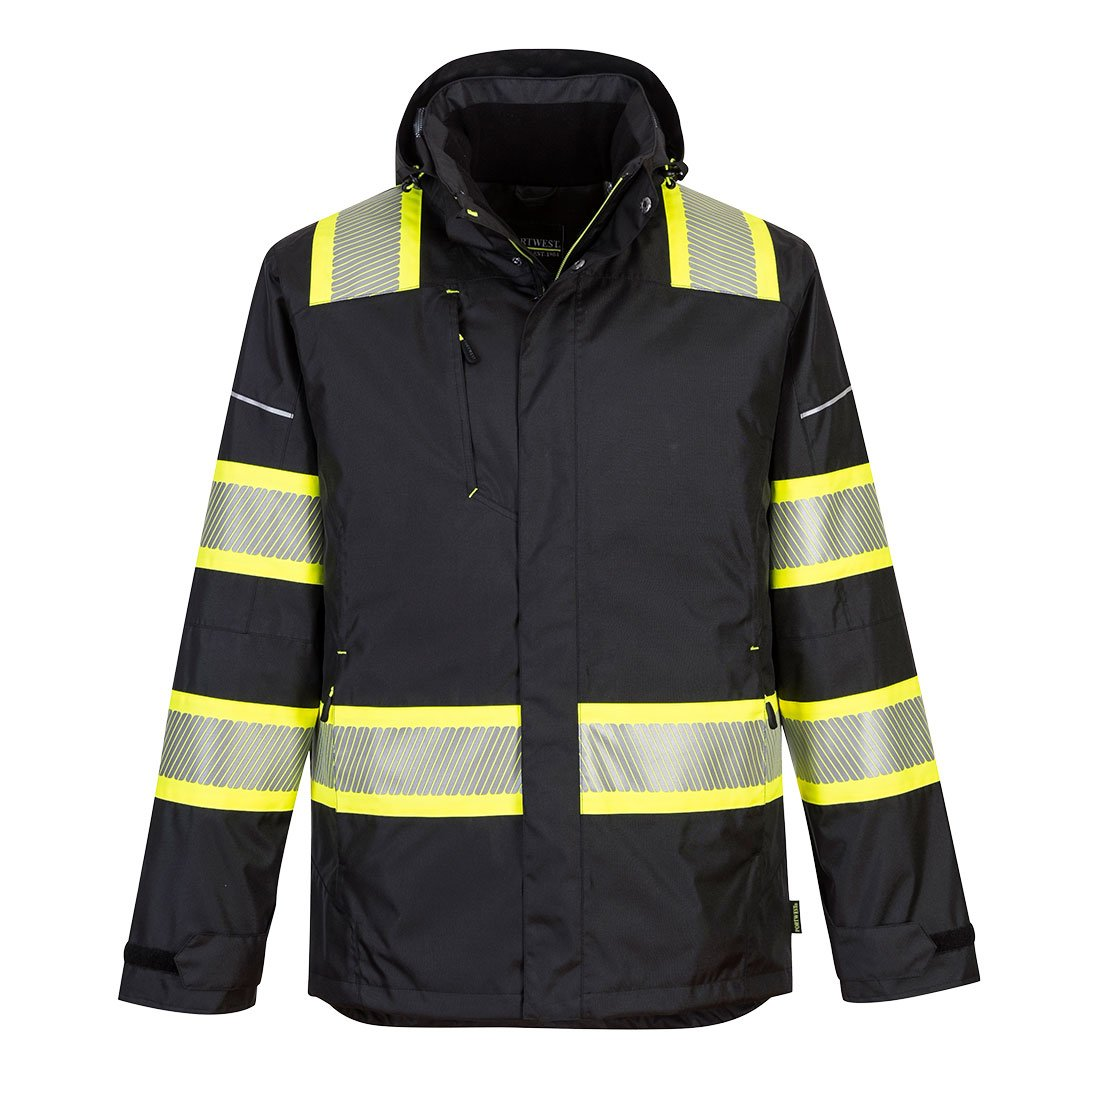 Brite Safety Winter Jacket with Reflective Tape - High Visibility Work Jackets with Detachable Hood